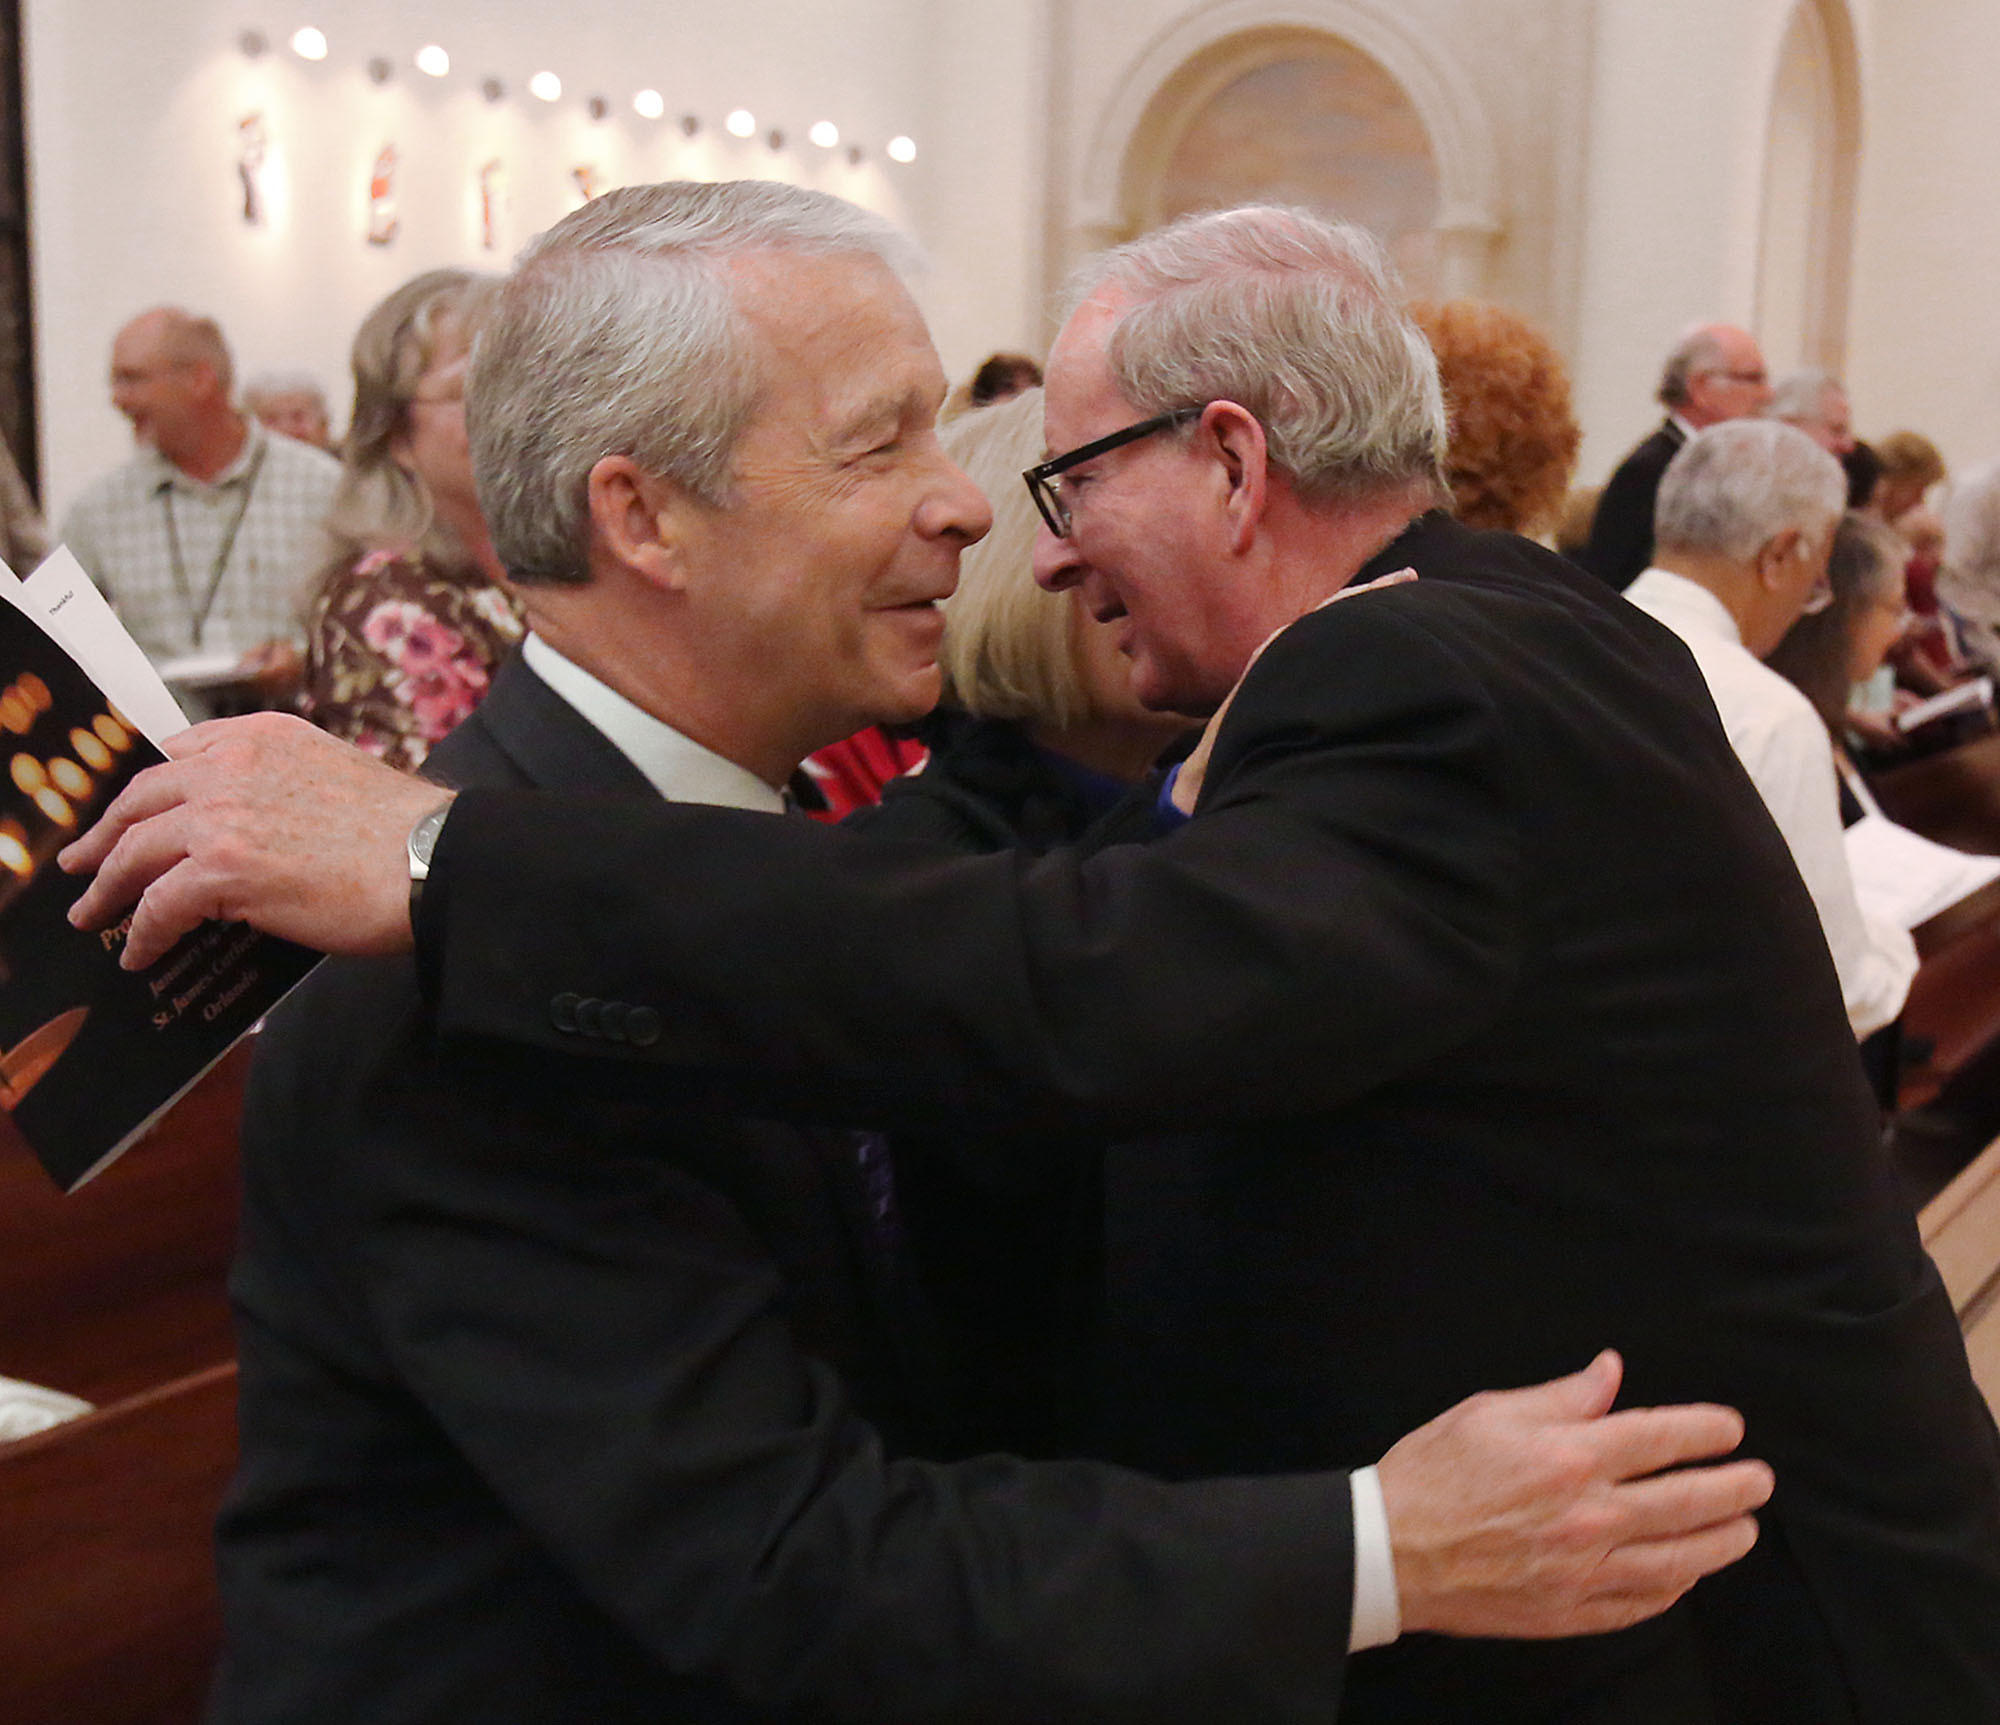 Dr. Joel Hunter, pastor of Northland Church, left, is hugged by Bishop John Noonan during an Interfaith Prayer Service for Peace at St. James Cathedral in Orlando on Tuesday, January 14, 2014.